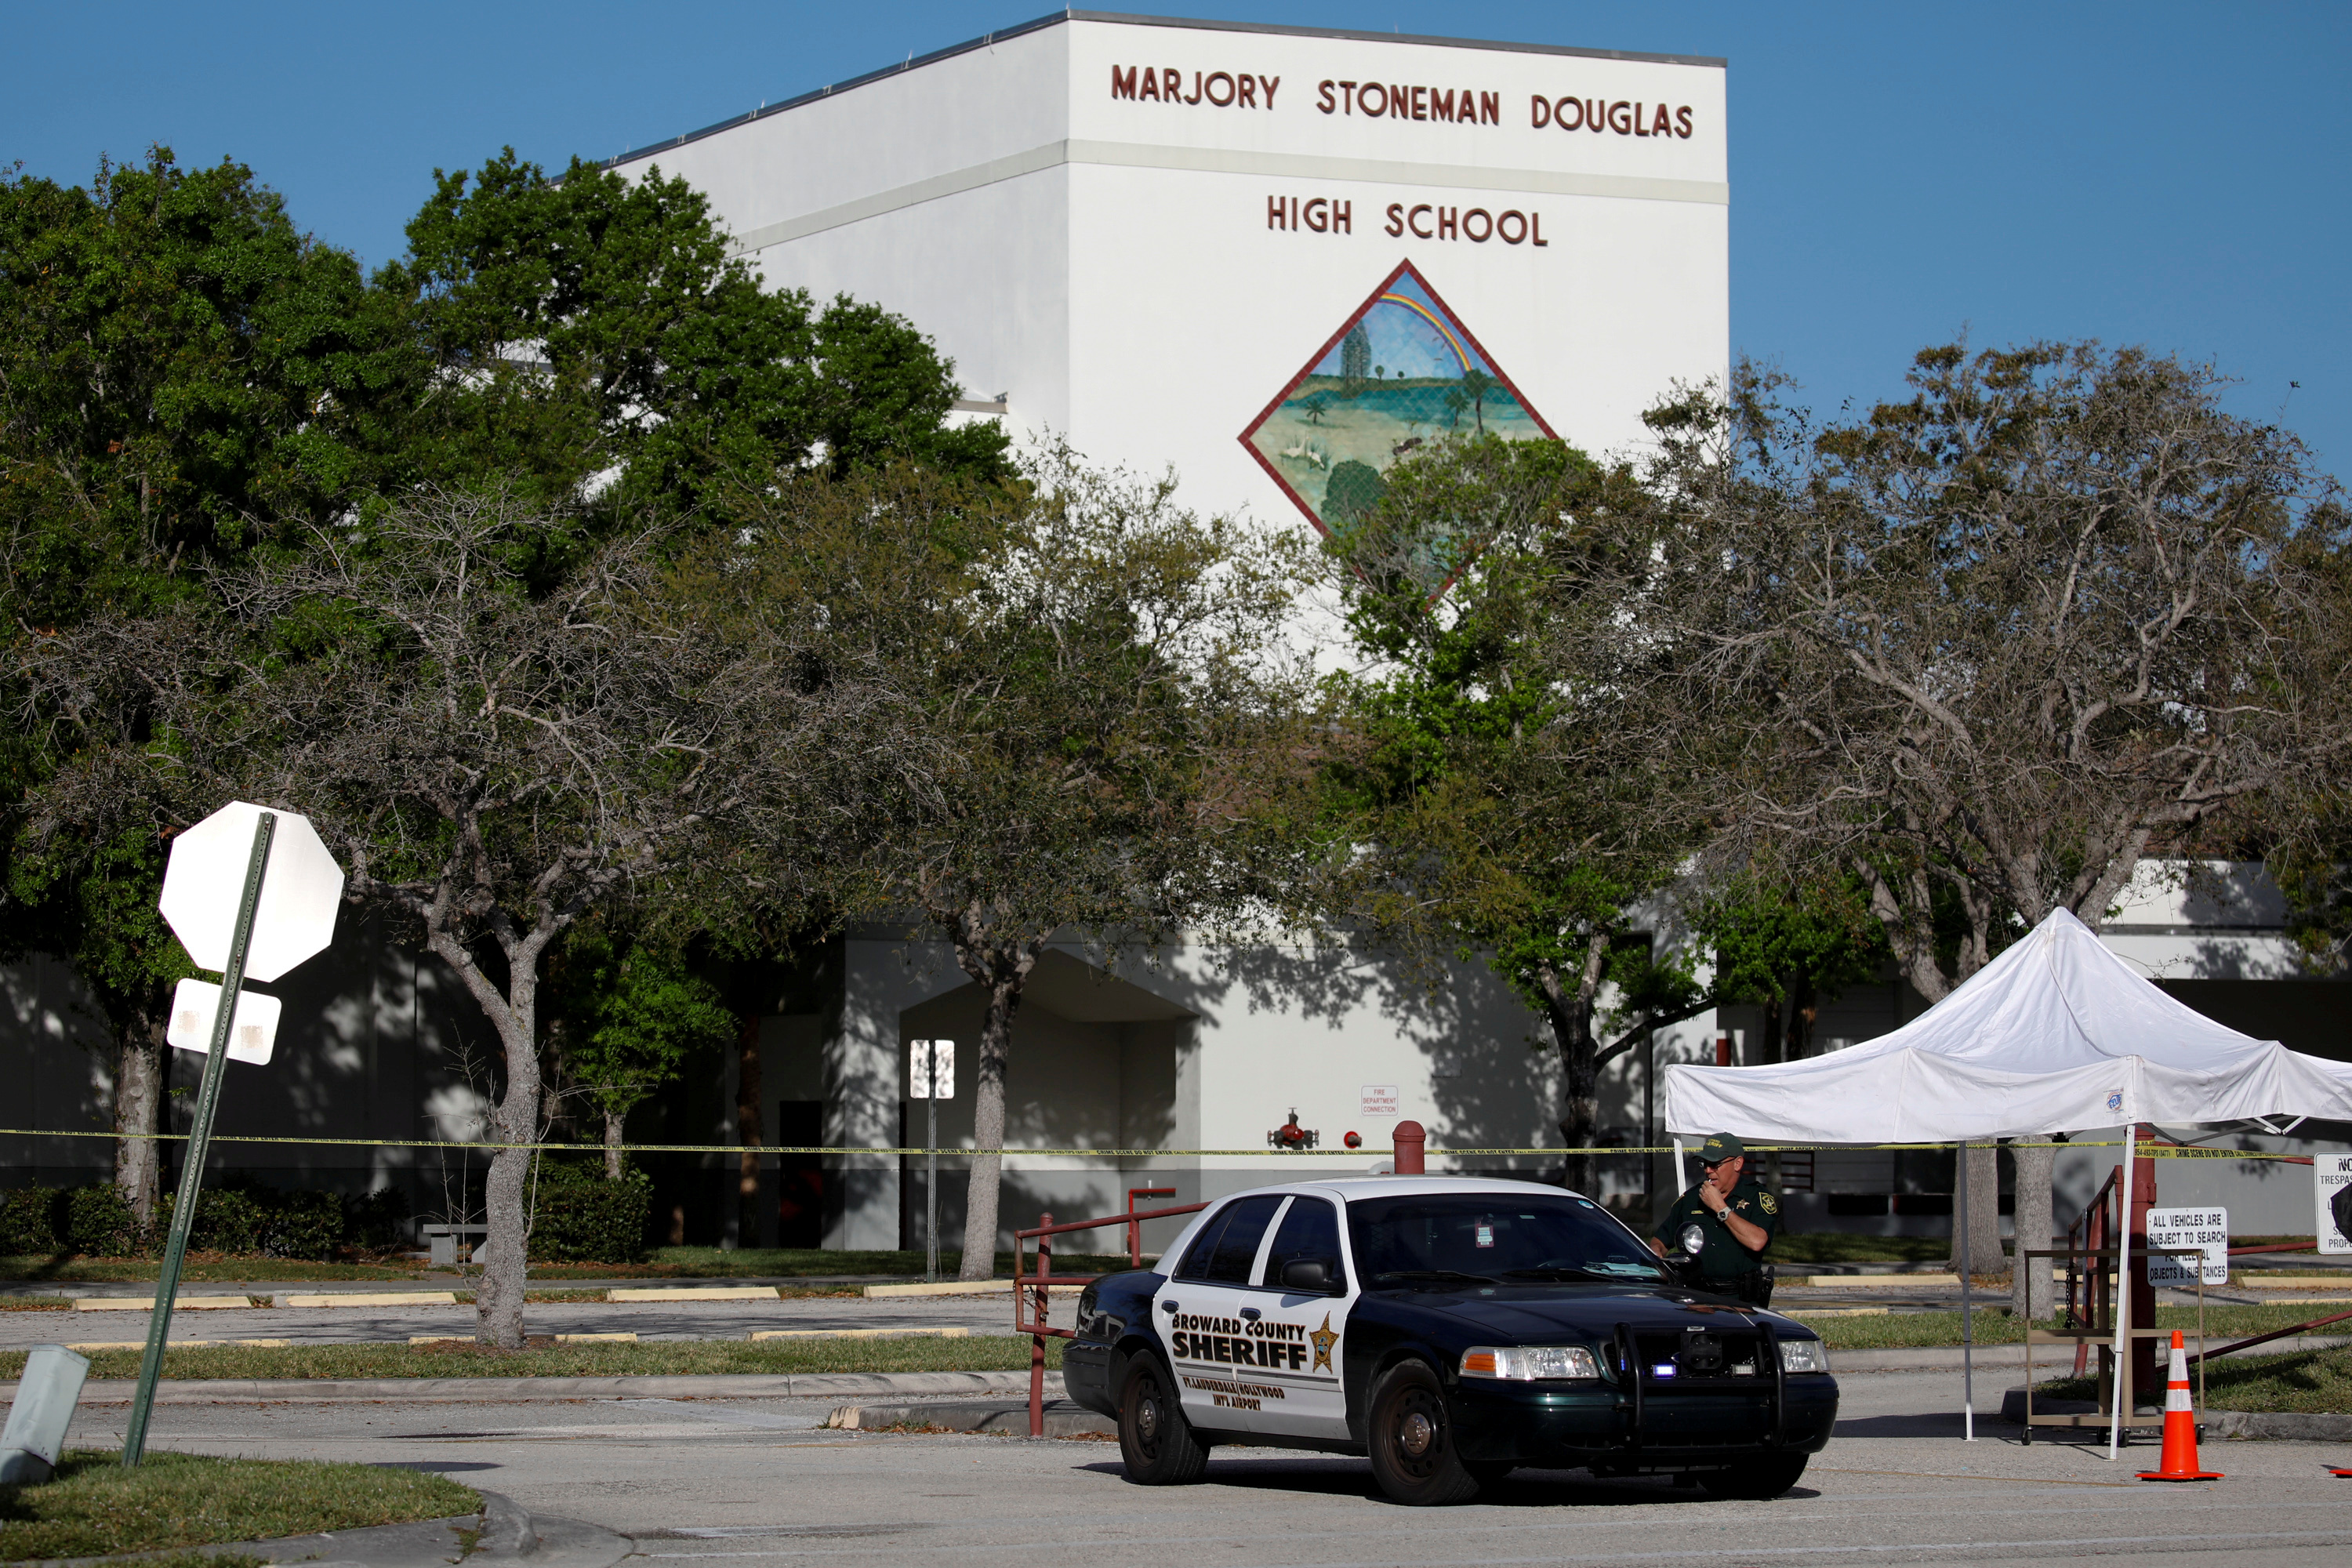 FILE PHOTO: A police officer Jamie Rubenstein stands guard in front of the Marjory Stoneman Douglas High School, after the police security perimeter was removed, following a mass shooting in Parkland, Florida, U.S., February 18, 2018. REUTERS/Carlos Garcia Rawlins/File Photo